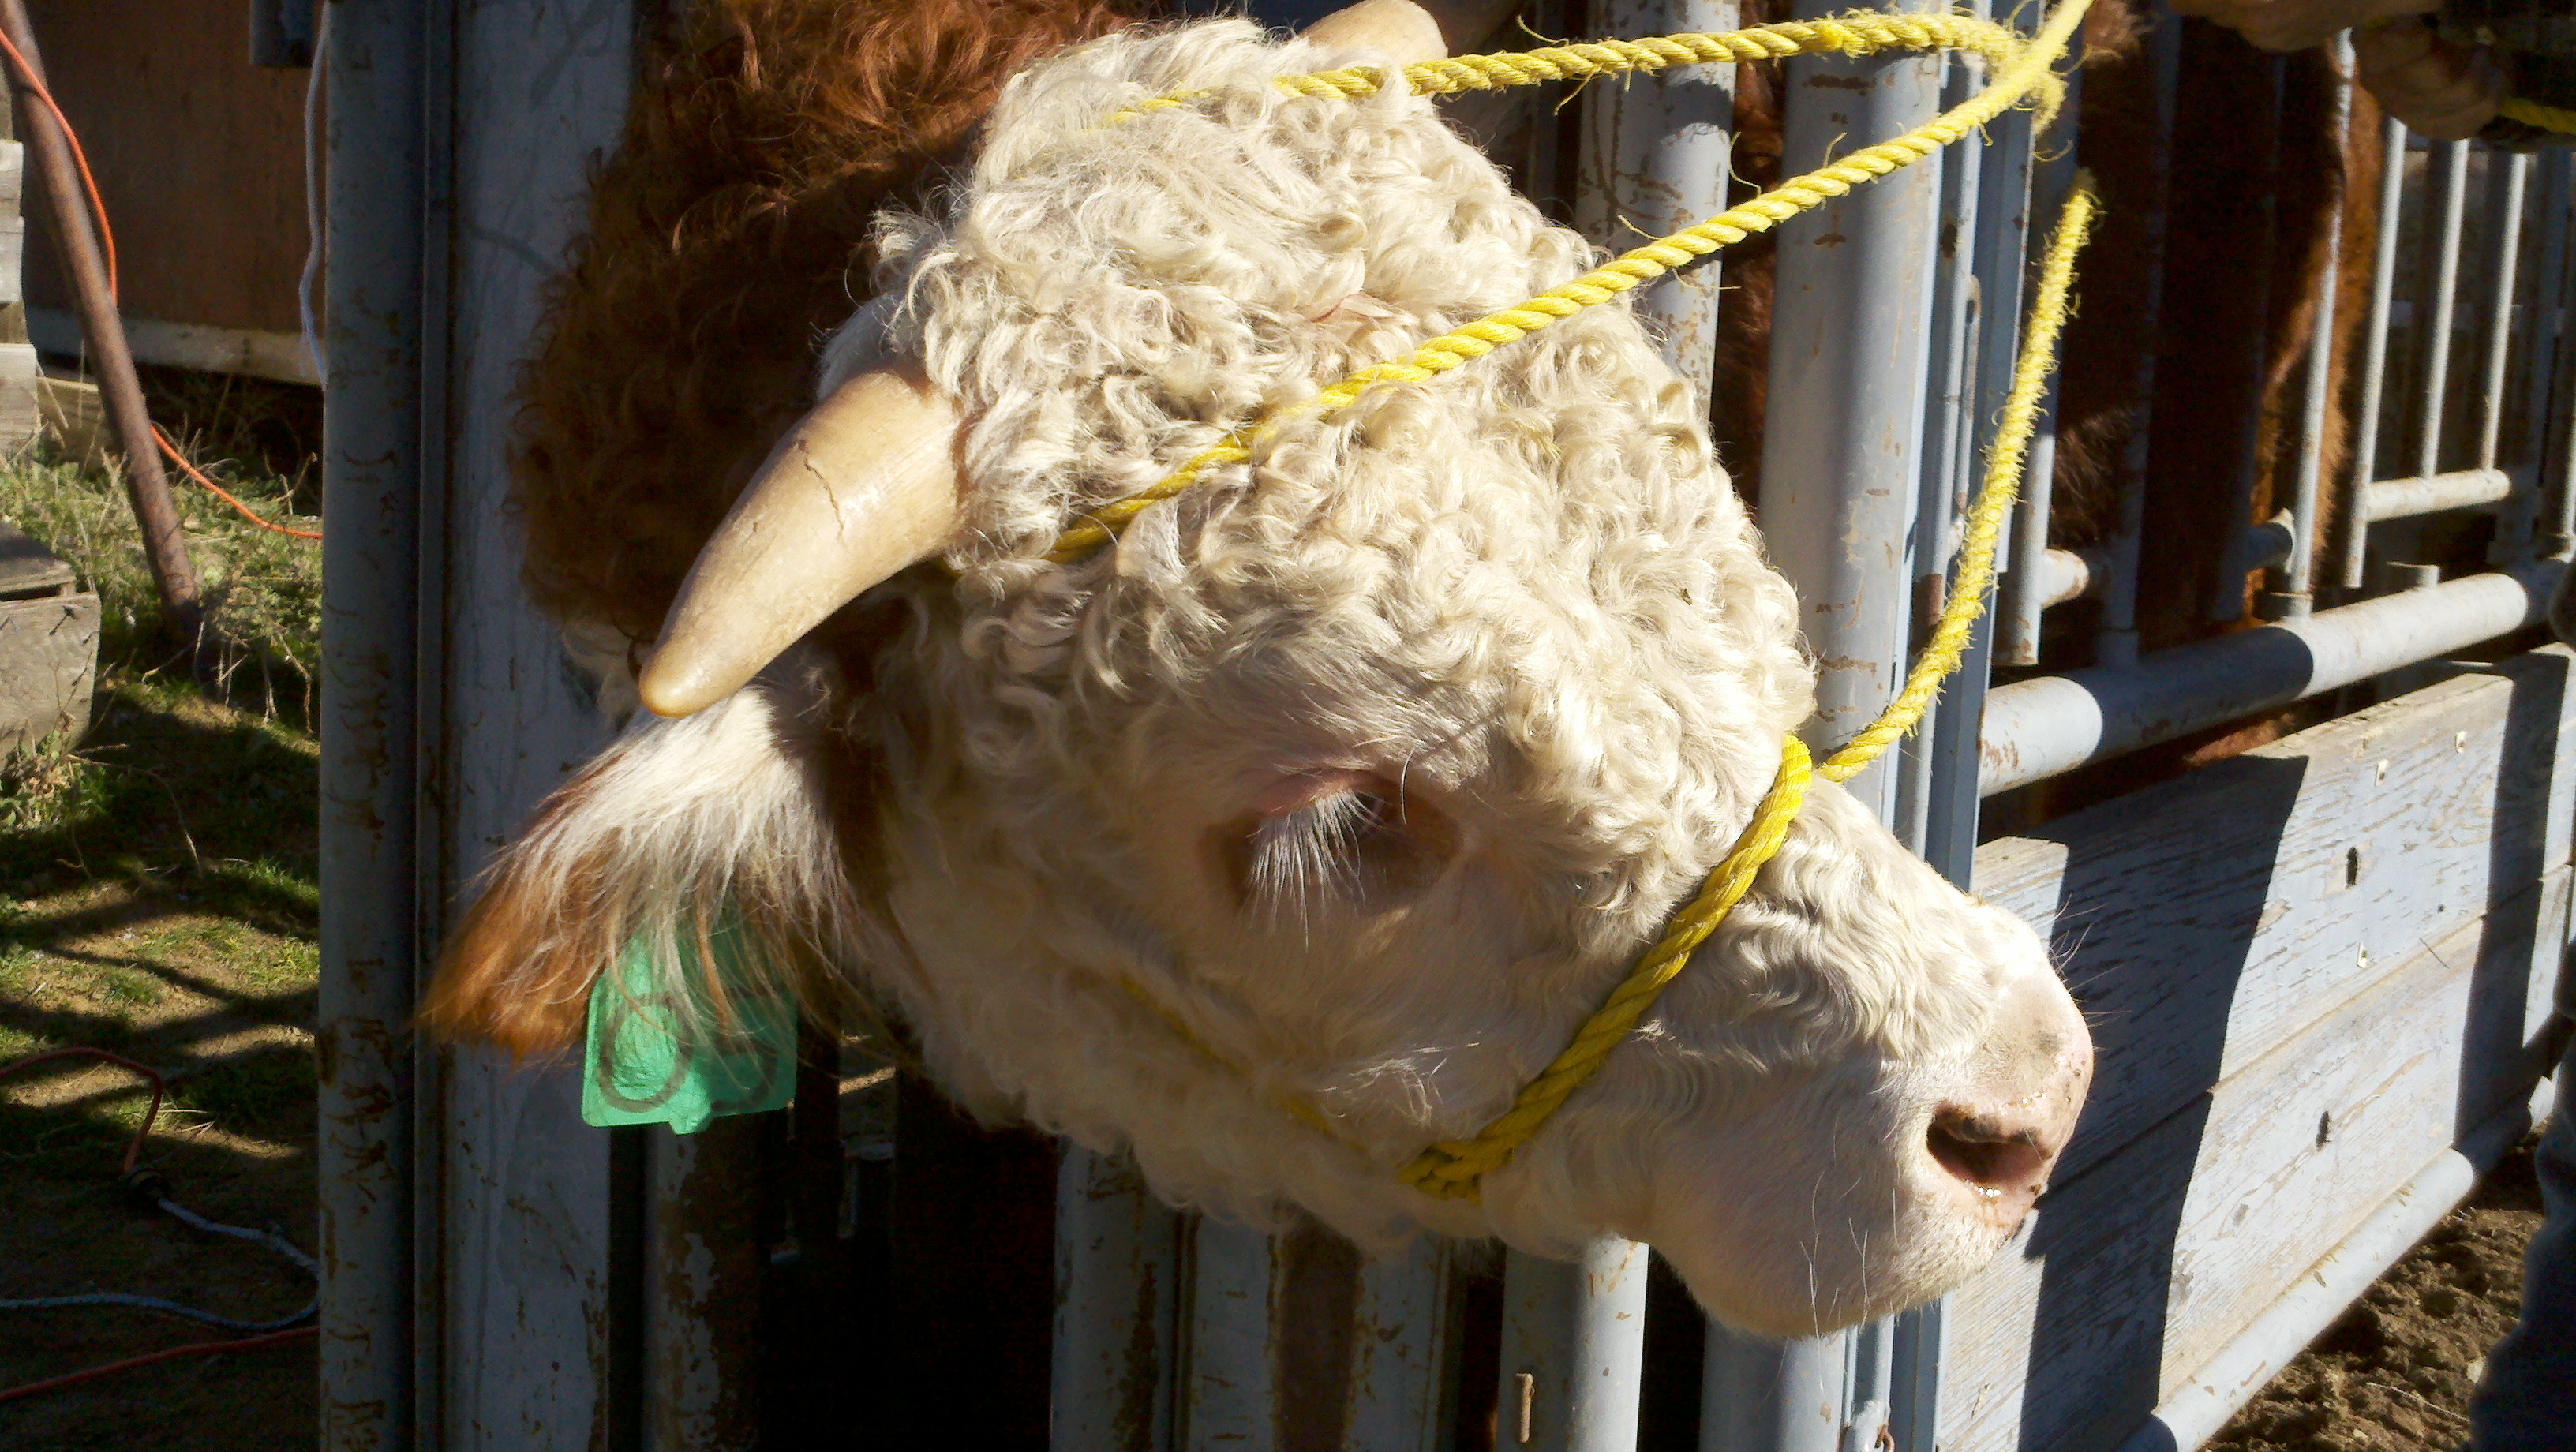 Tipping Horns | Common Sense Agriculture's Blog Horns Growing Out Of Head